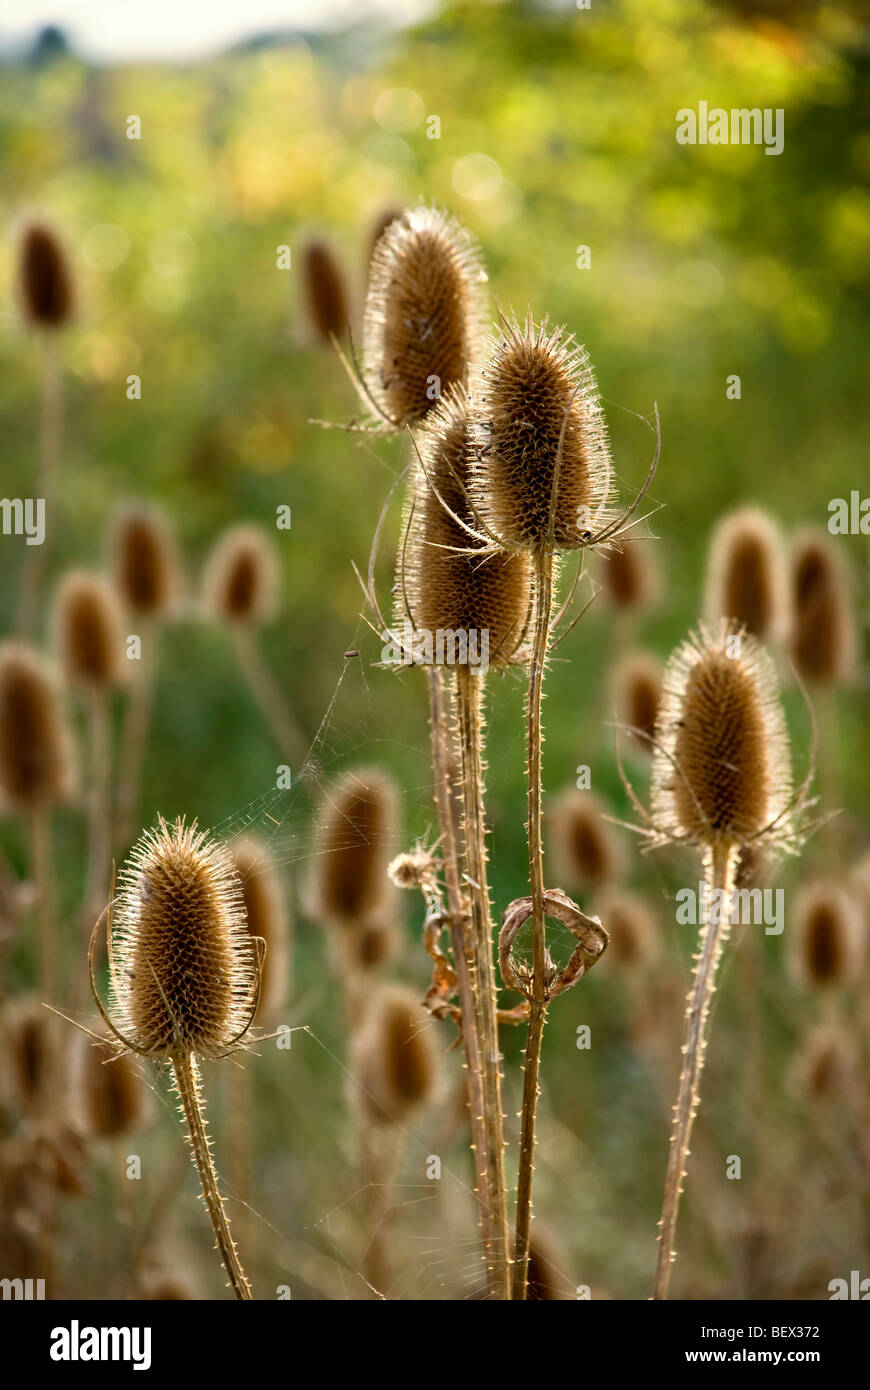 Teasels back lit by later afternoon sun with out of focus teasels in the background, taken early autumn - Stock Image